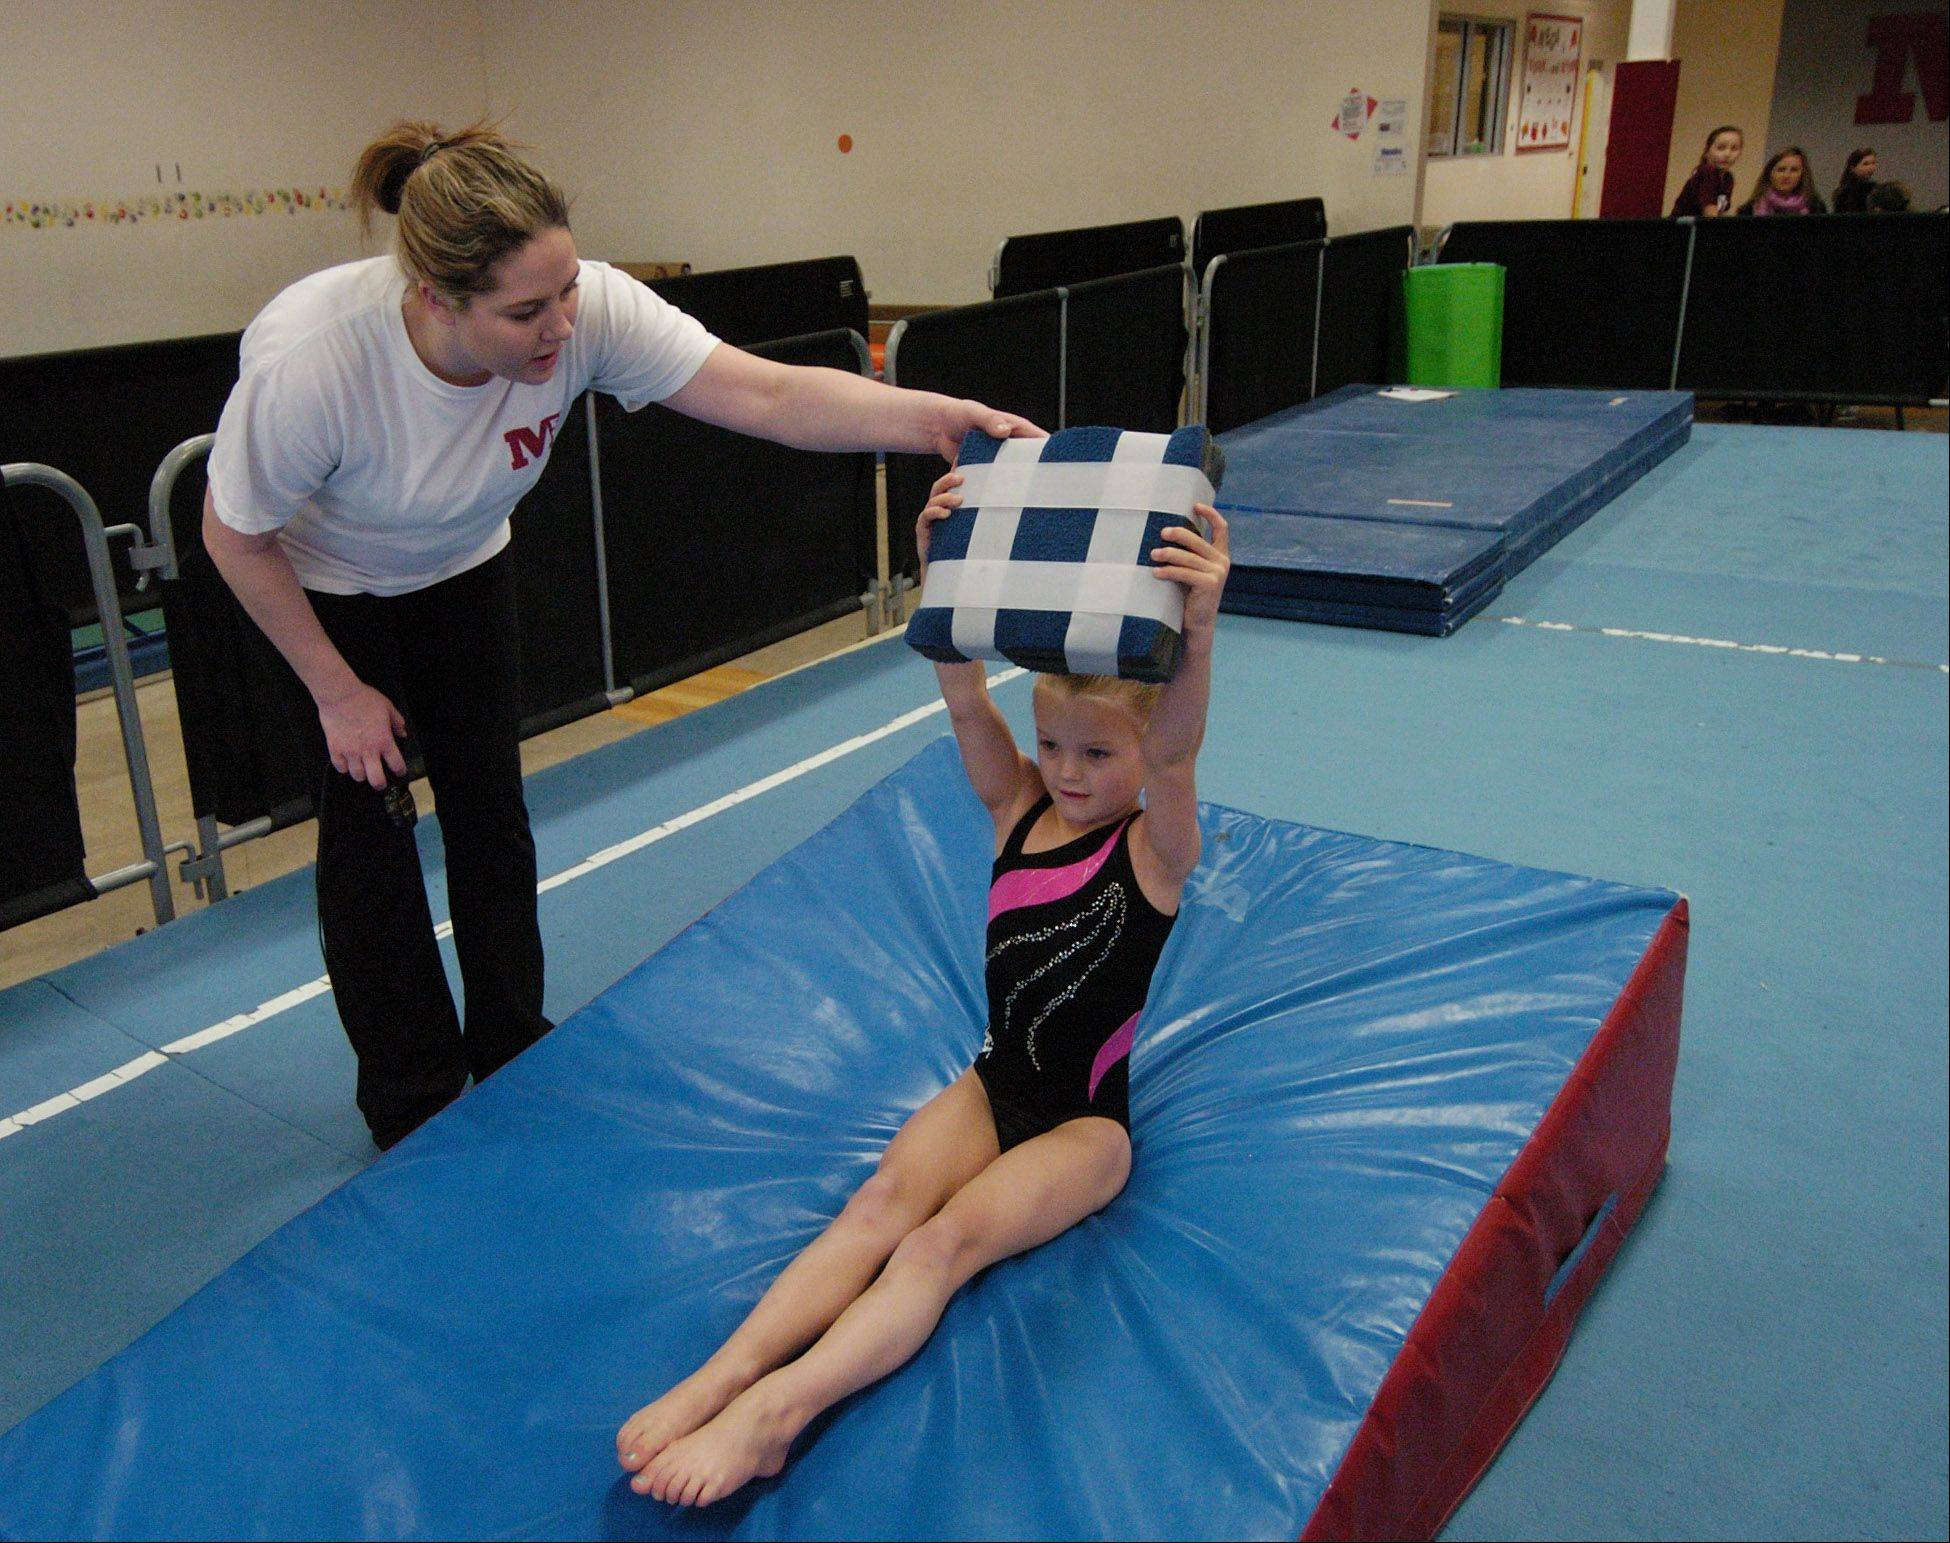 JOE LEWNARD/jlewnard@dailyherald.comGymnastics coach Caitlin Summerville works with Annika Jessie, 5, of Schaumburg at Midwest Elite Gymnastics Academy in South Barrington. The academy will be moving to Elgin in January.